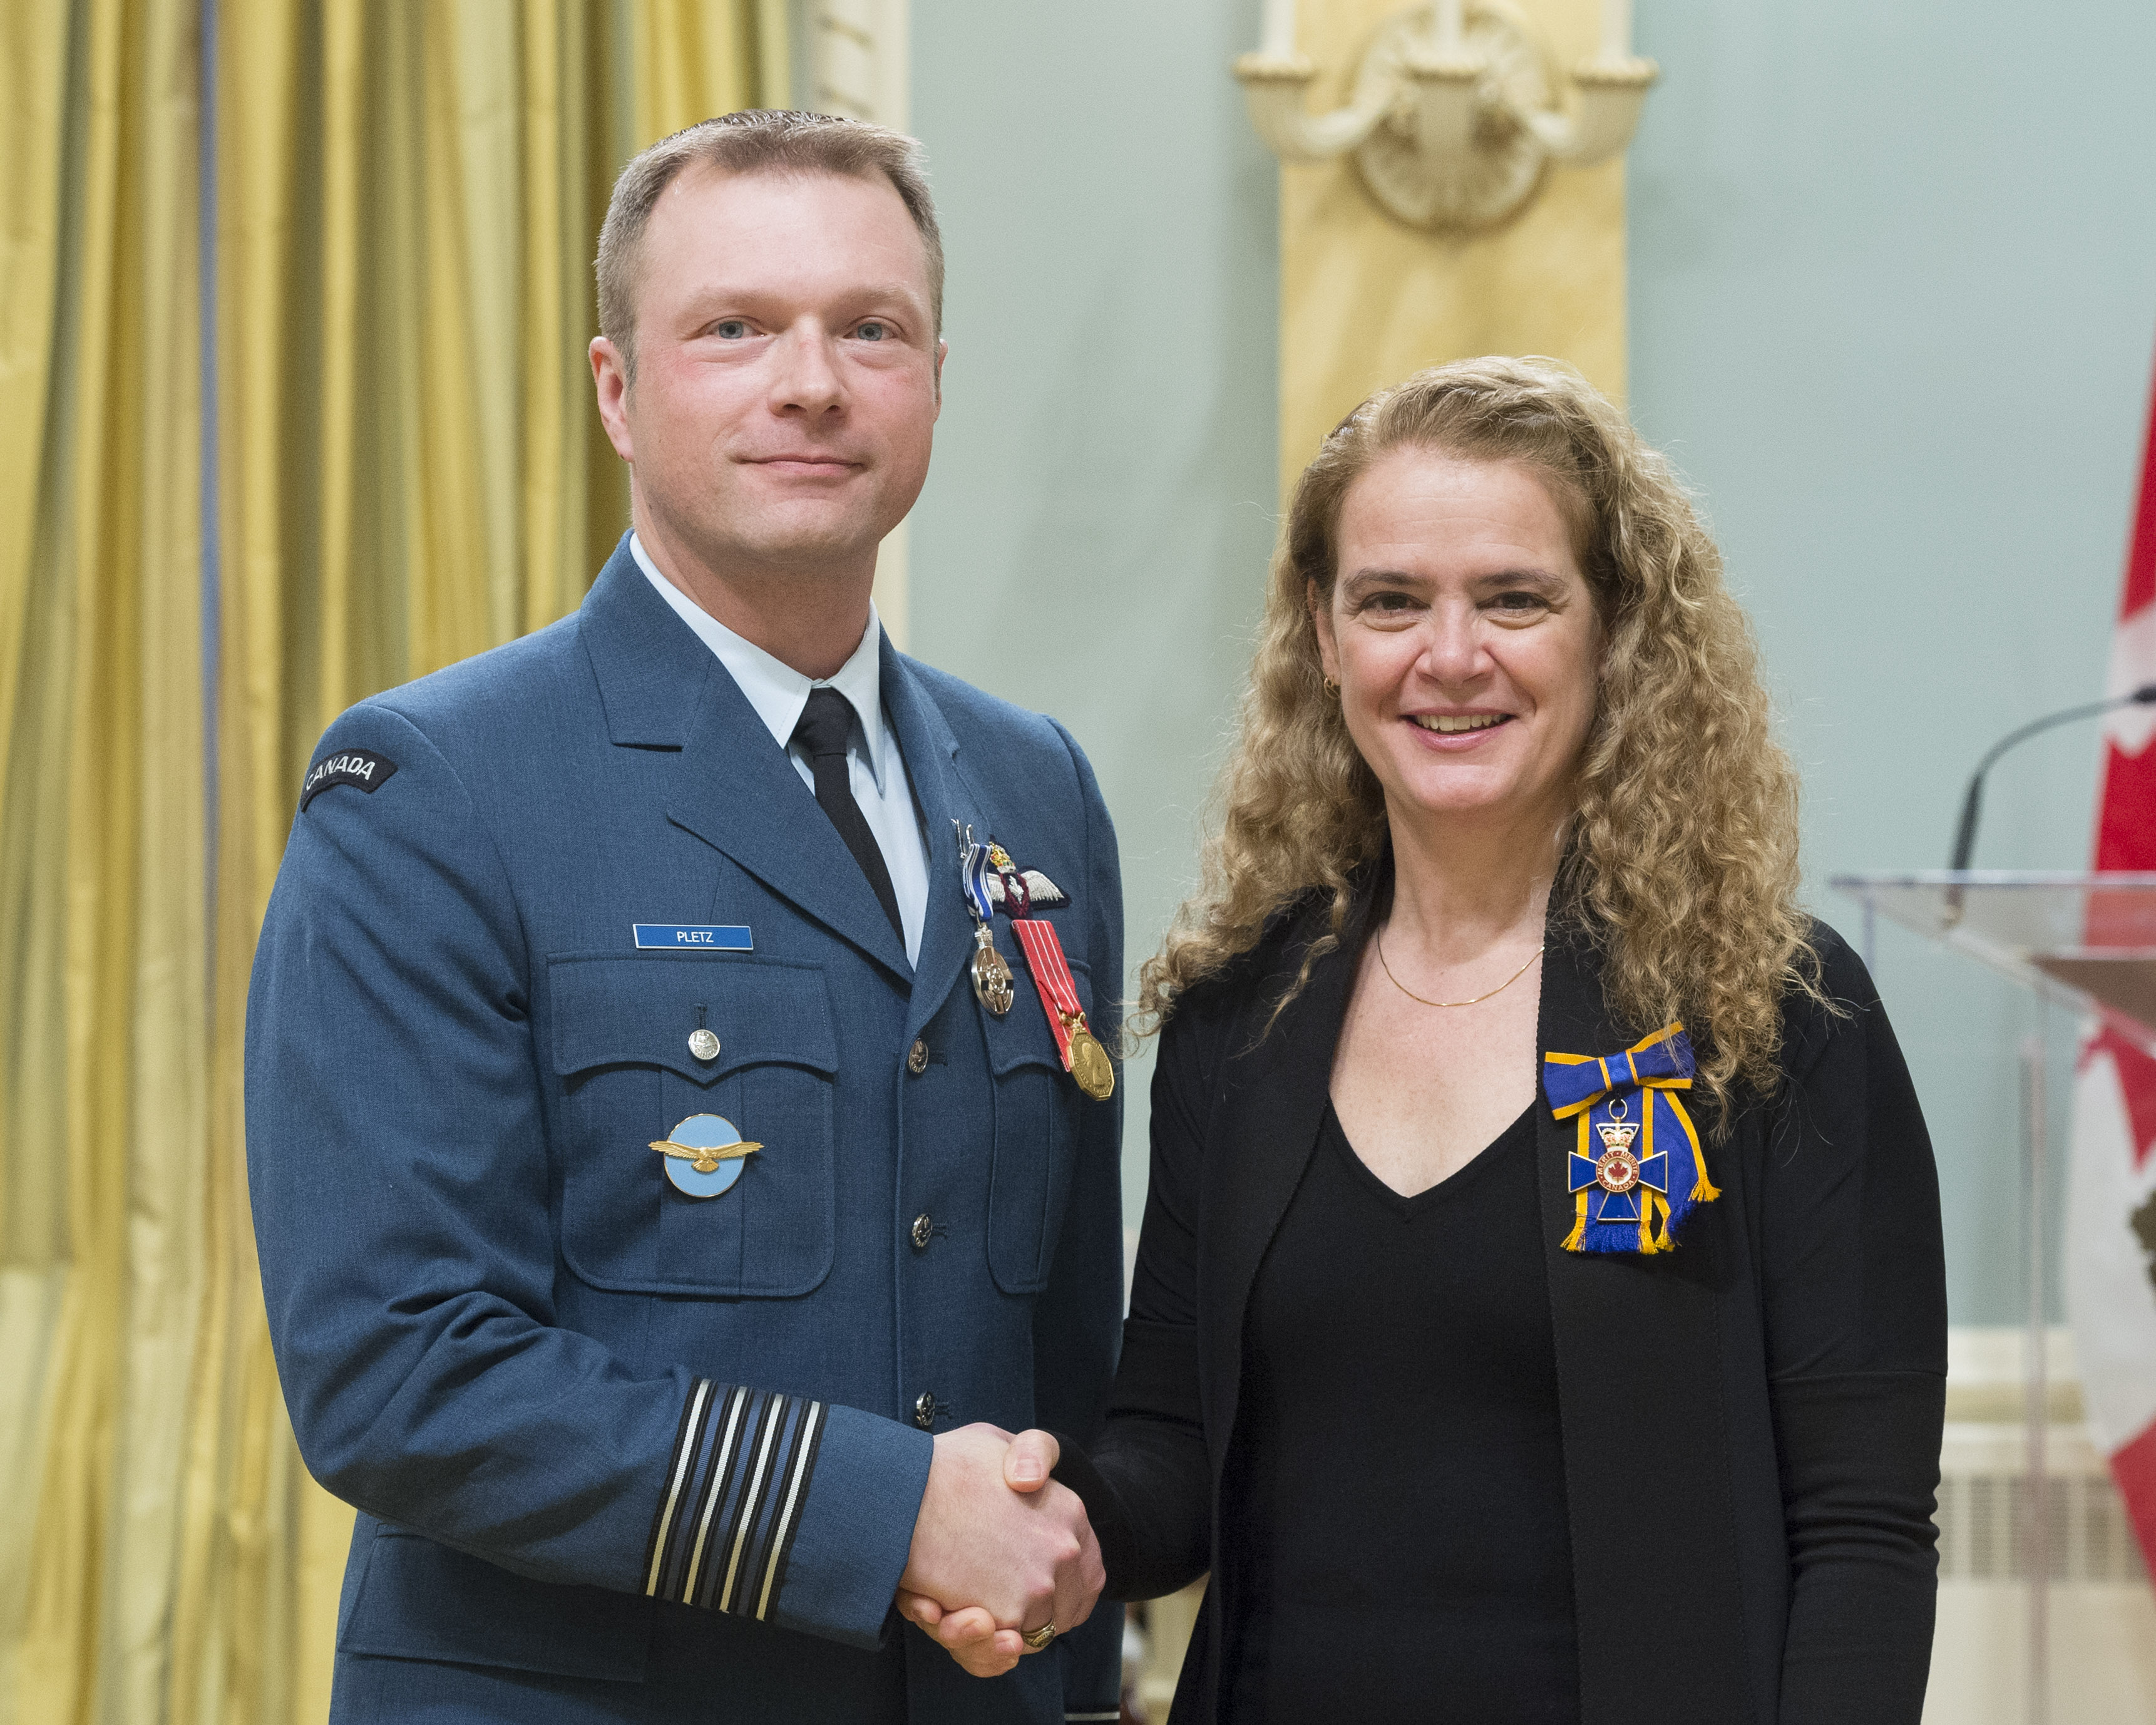 Lieutenant-Colonel David James Pletz receives the Meritorious Service Medal (Military Division) from Governor General and Commander-in-Chief of Canada Julie Payette on February 28, 2018. PHOTO: Sergeant Johanie Maheu, OSGG, GG05-2018-0066-045